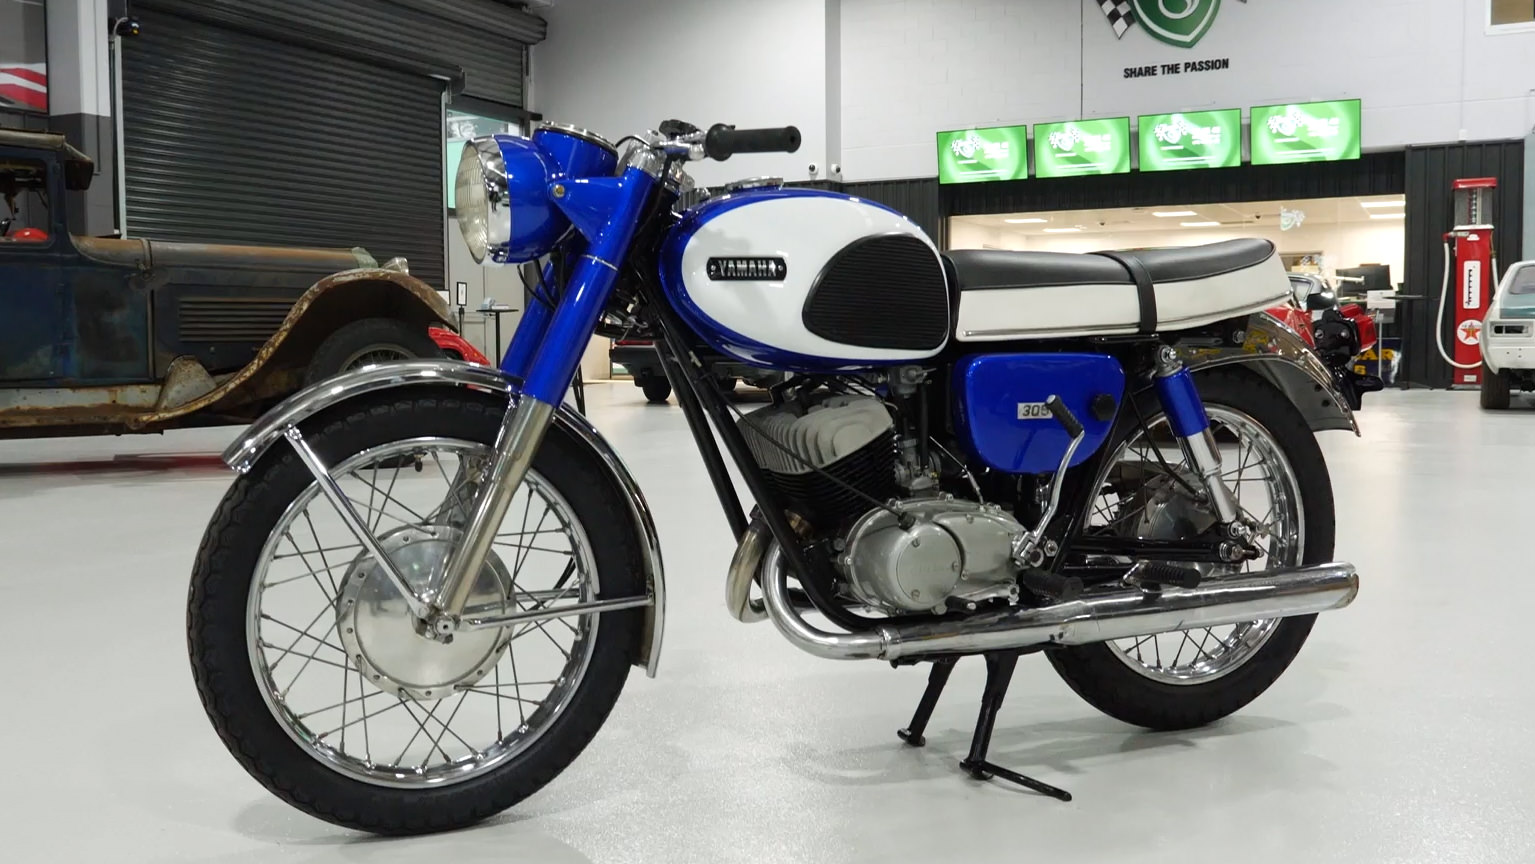 1965 Yamaha YM1 305cc Motorcycle - 2021 Shannons Spring Timed Online Auction